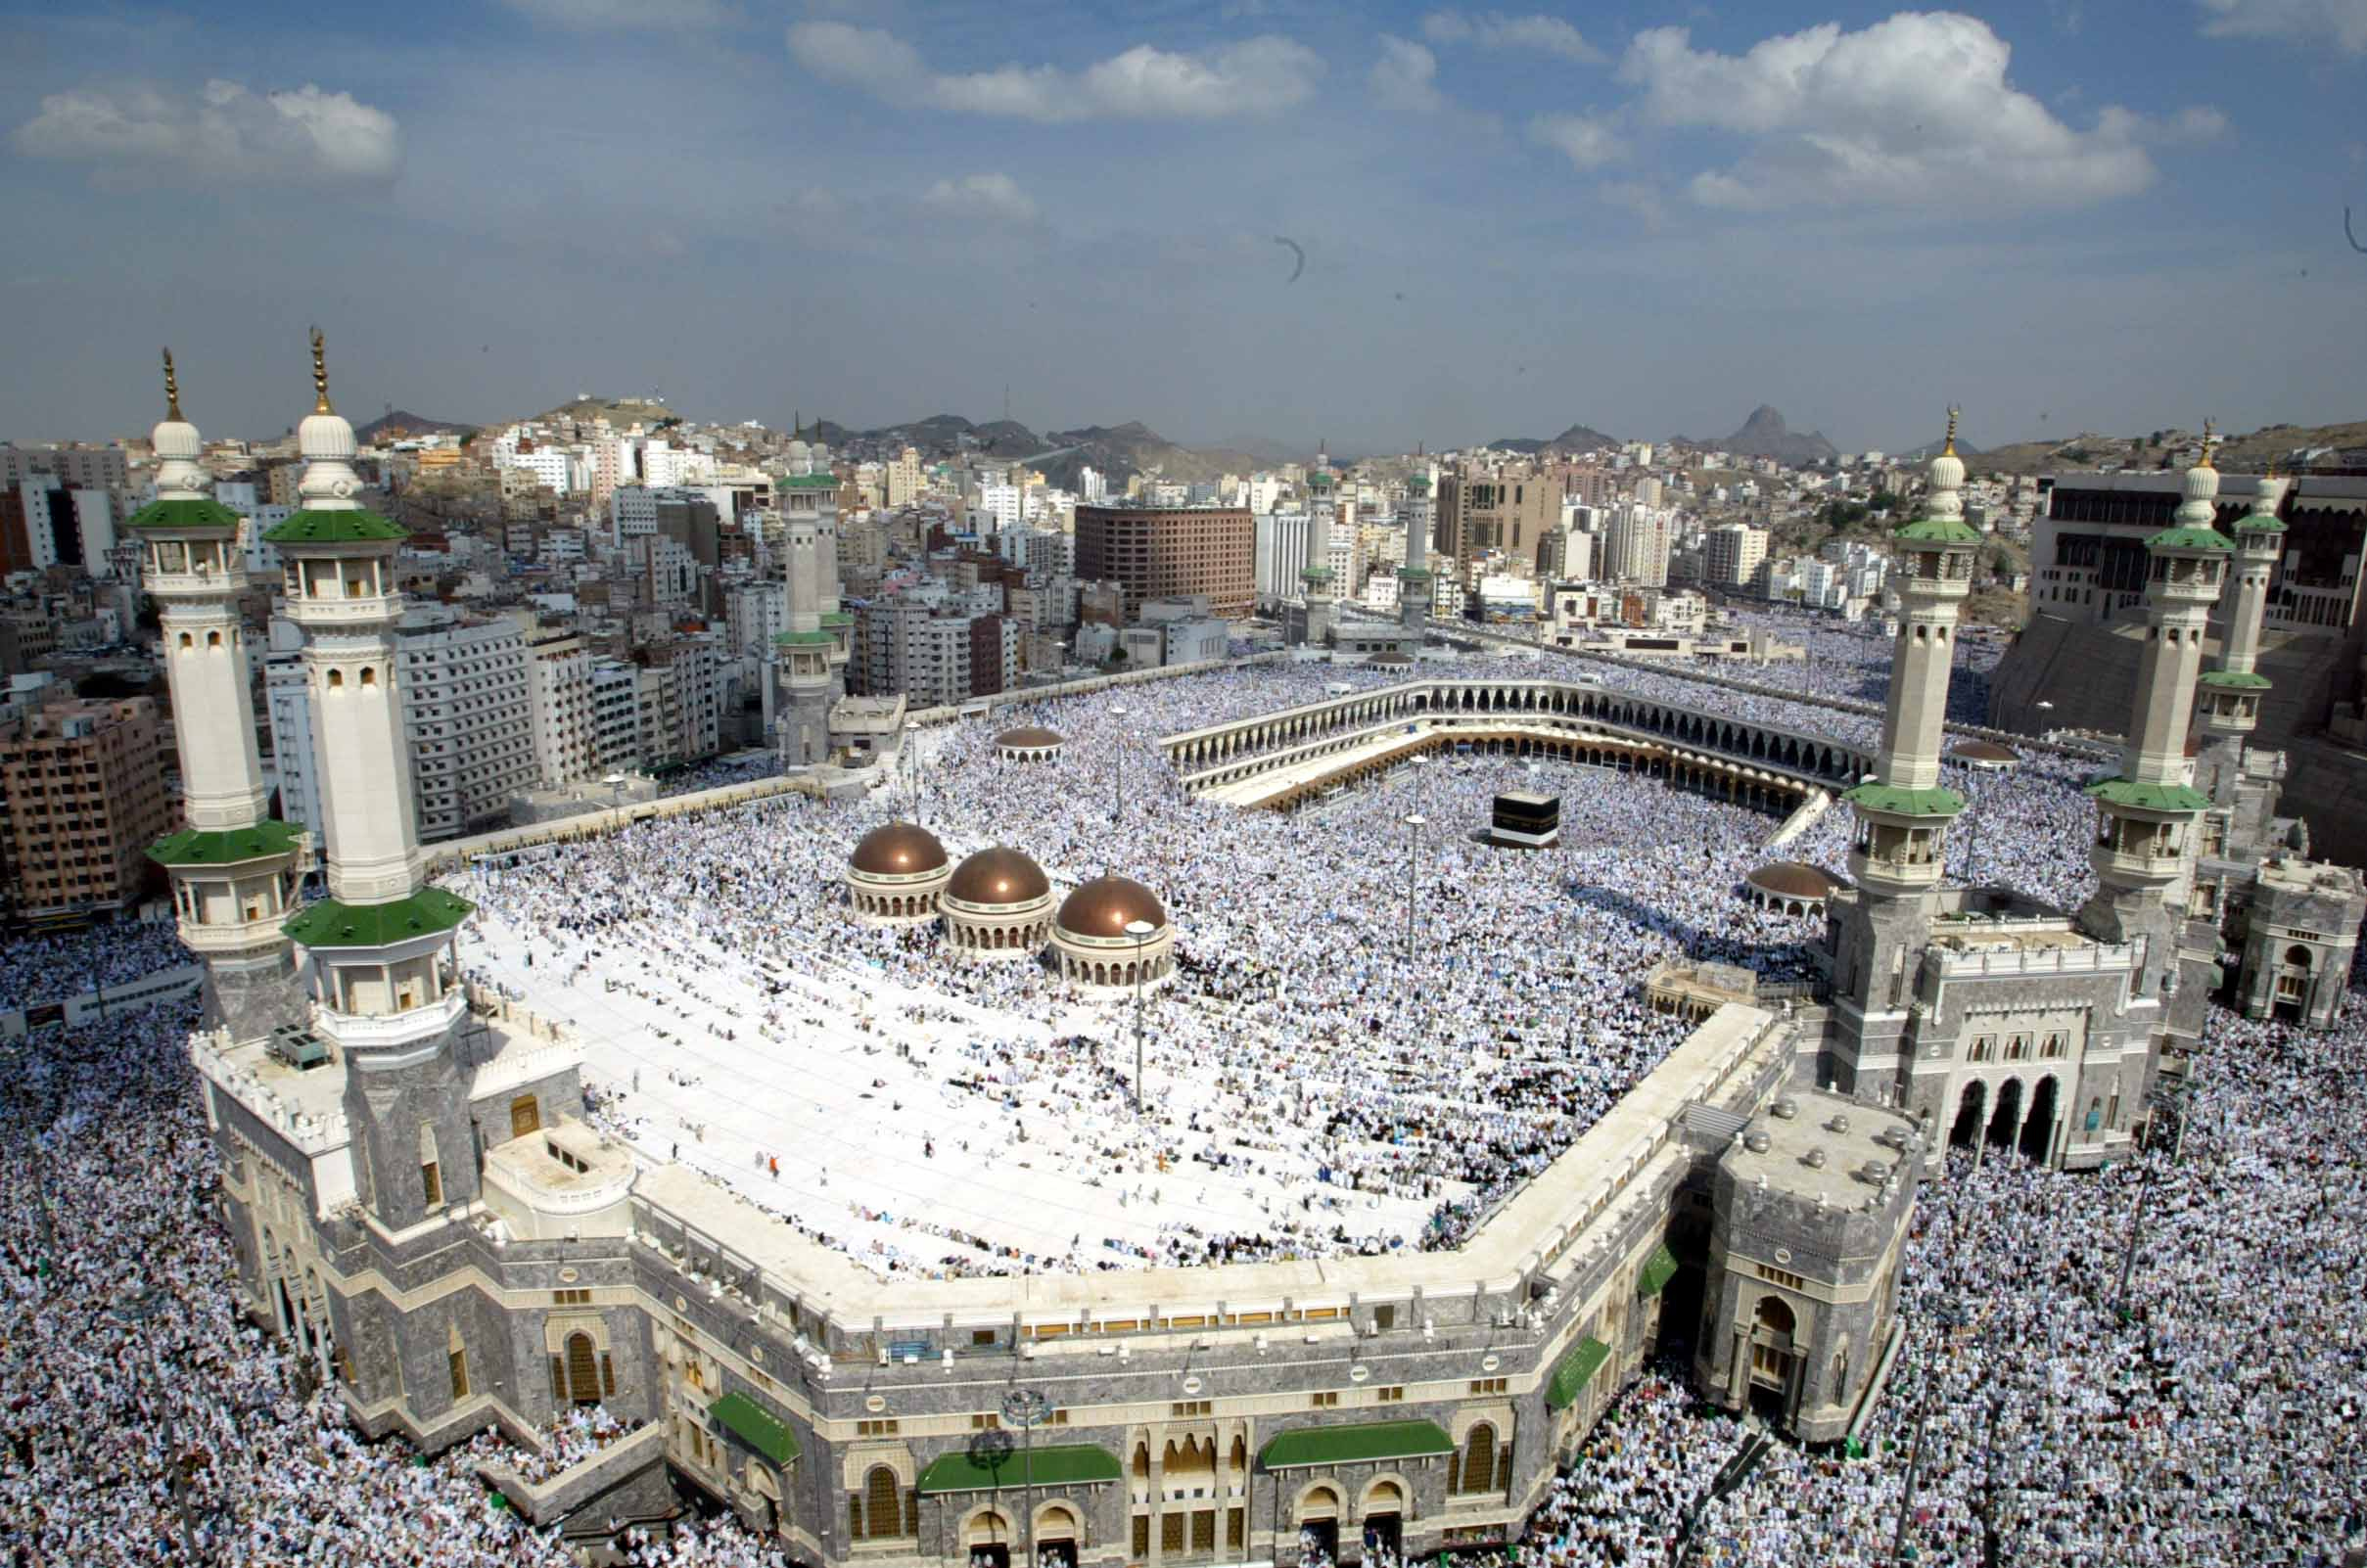 Preparations before leaving for Hajj - IslamiCity